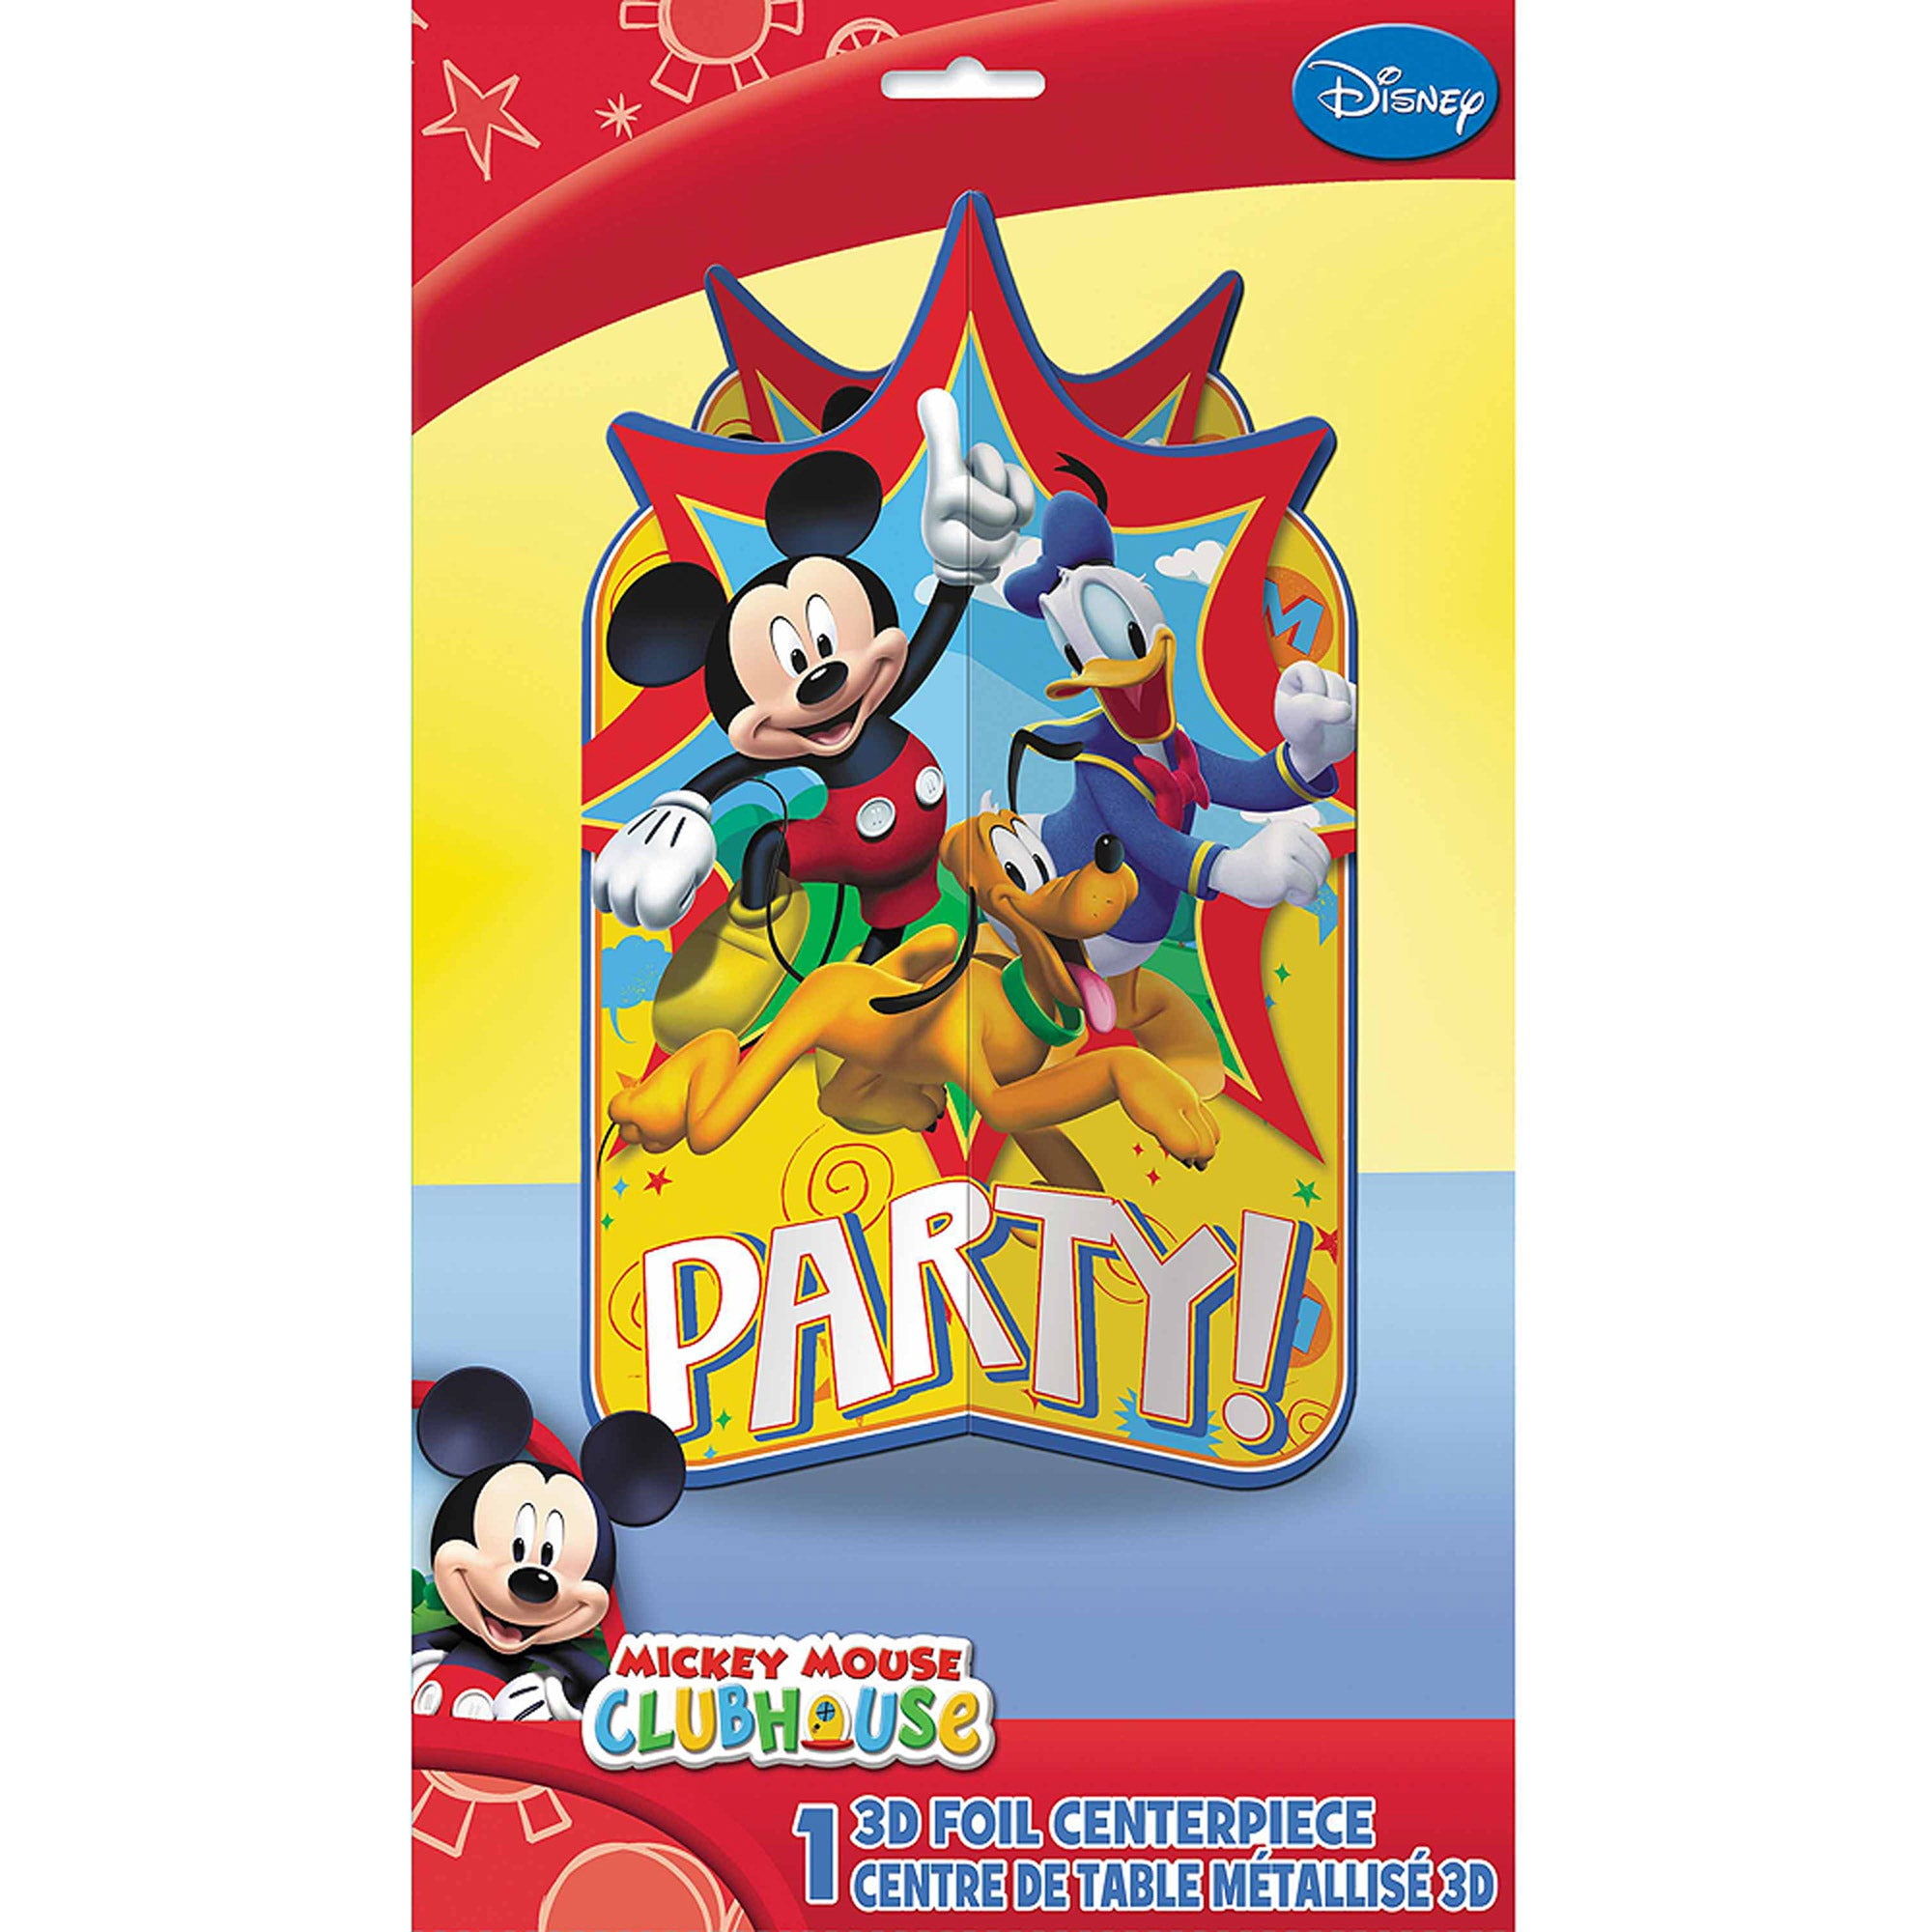 Mickey Mouse Clubhouse 3D Foil Centerpiece